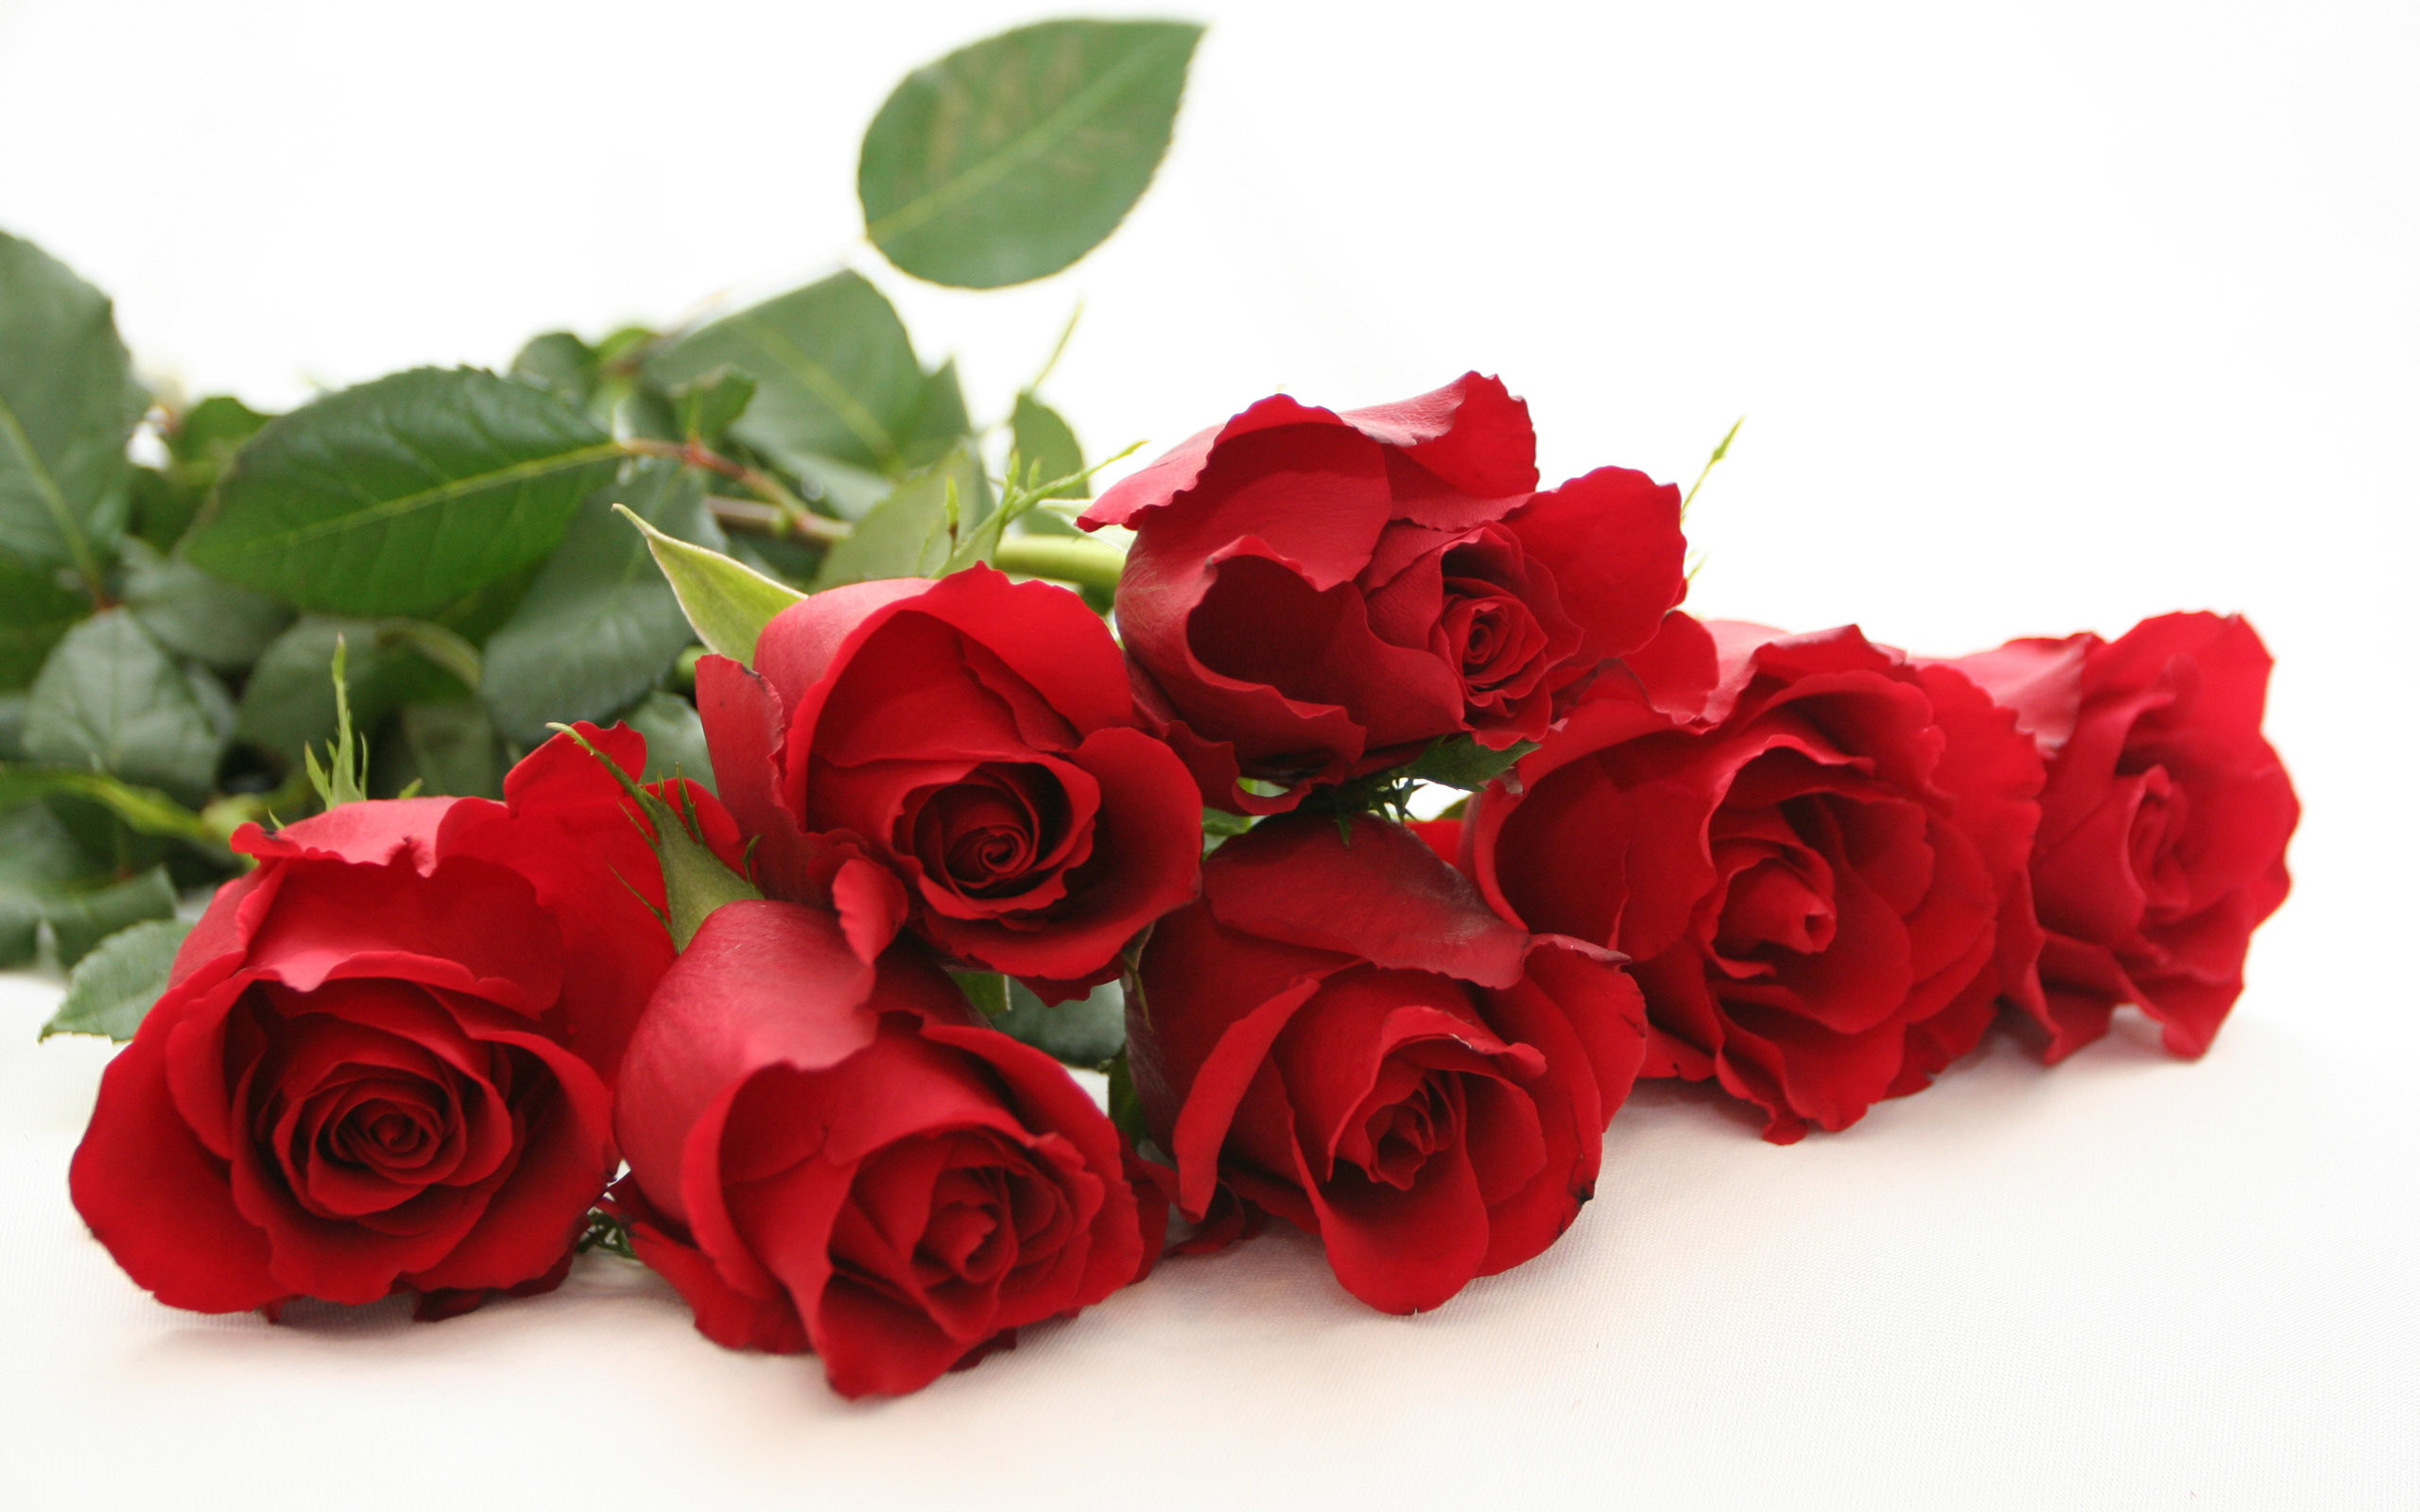 Res: 2560x1600, red roses